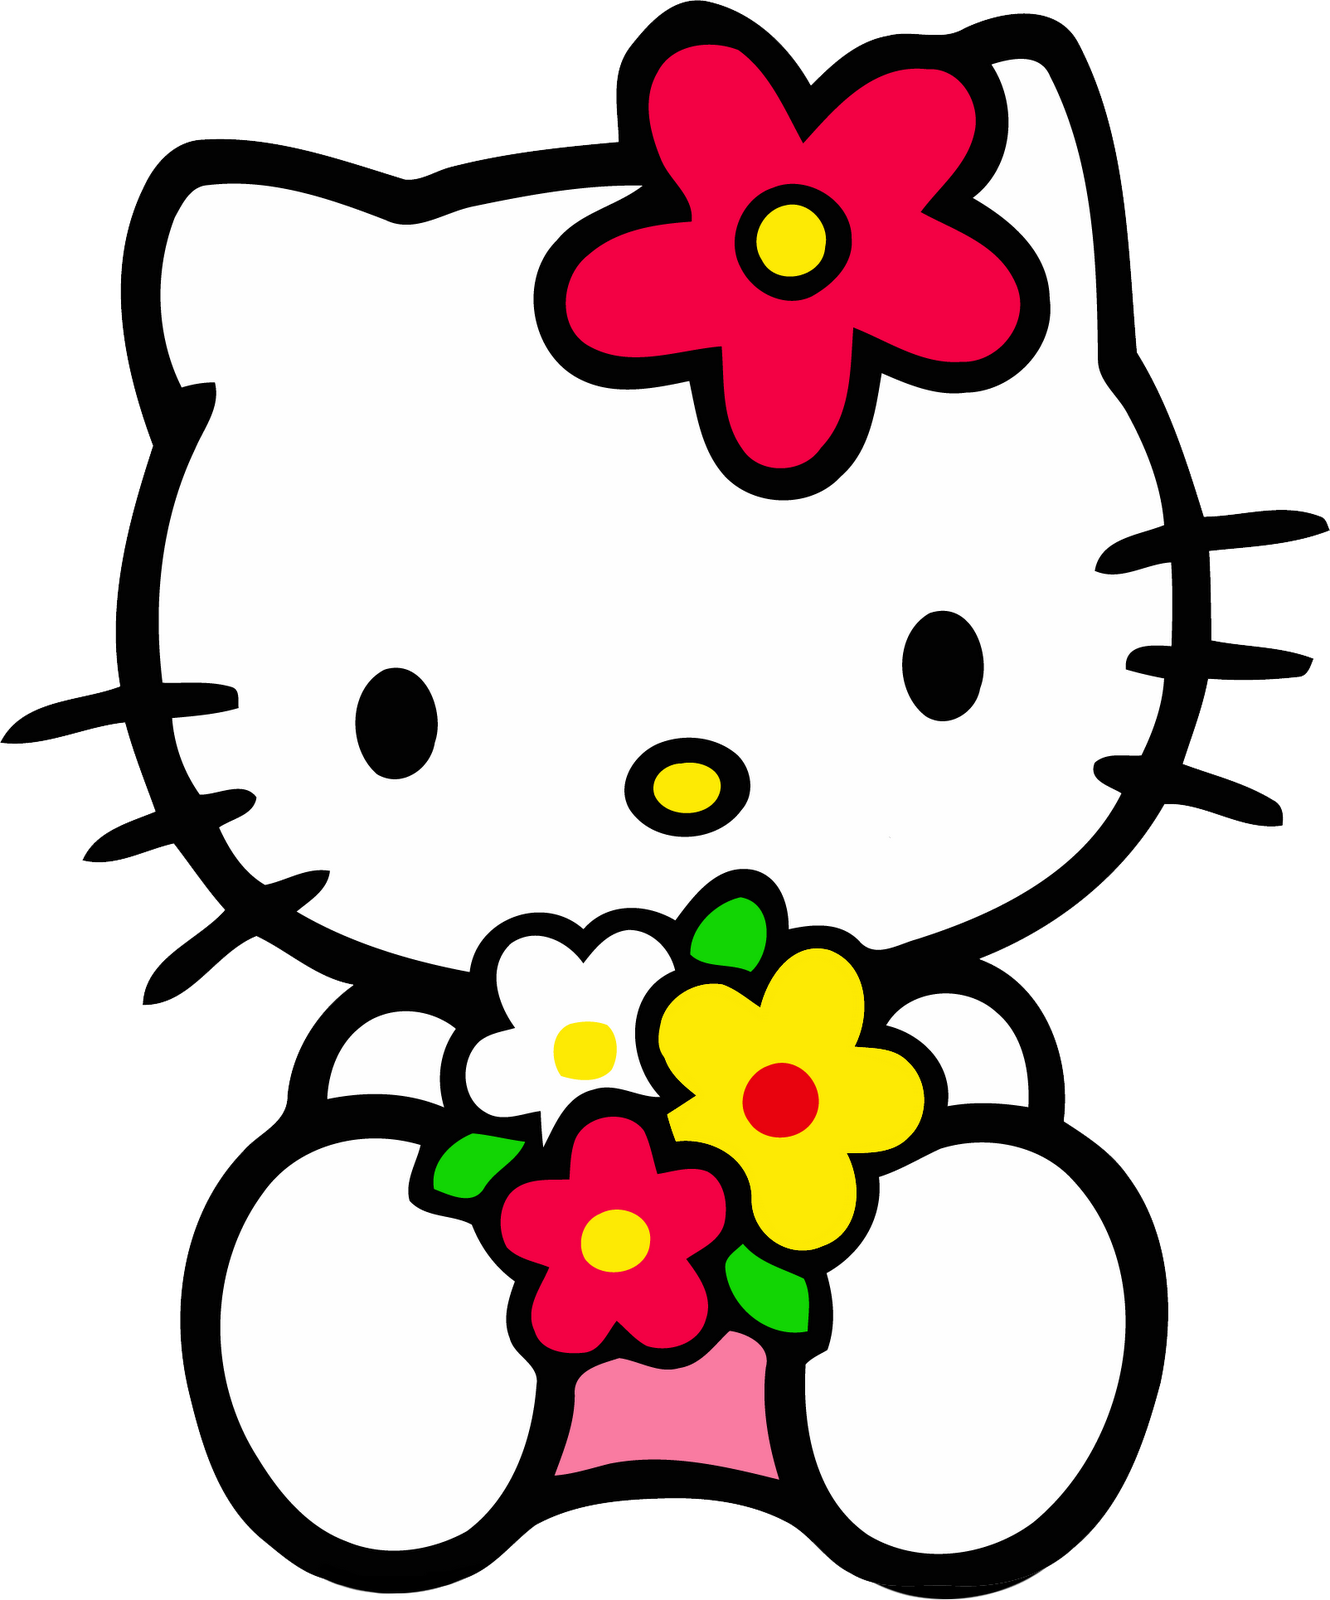 ImagesList.com: Hello Kitty Images, part 2